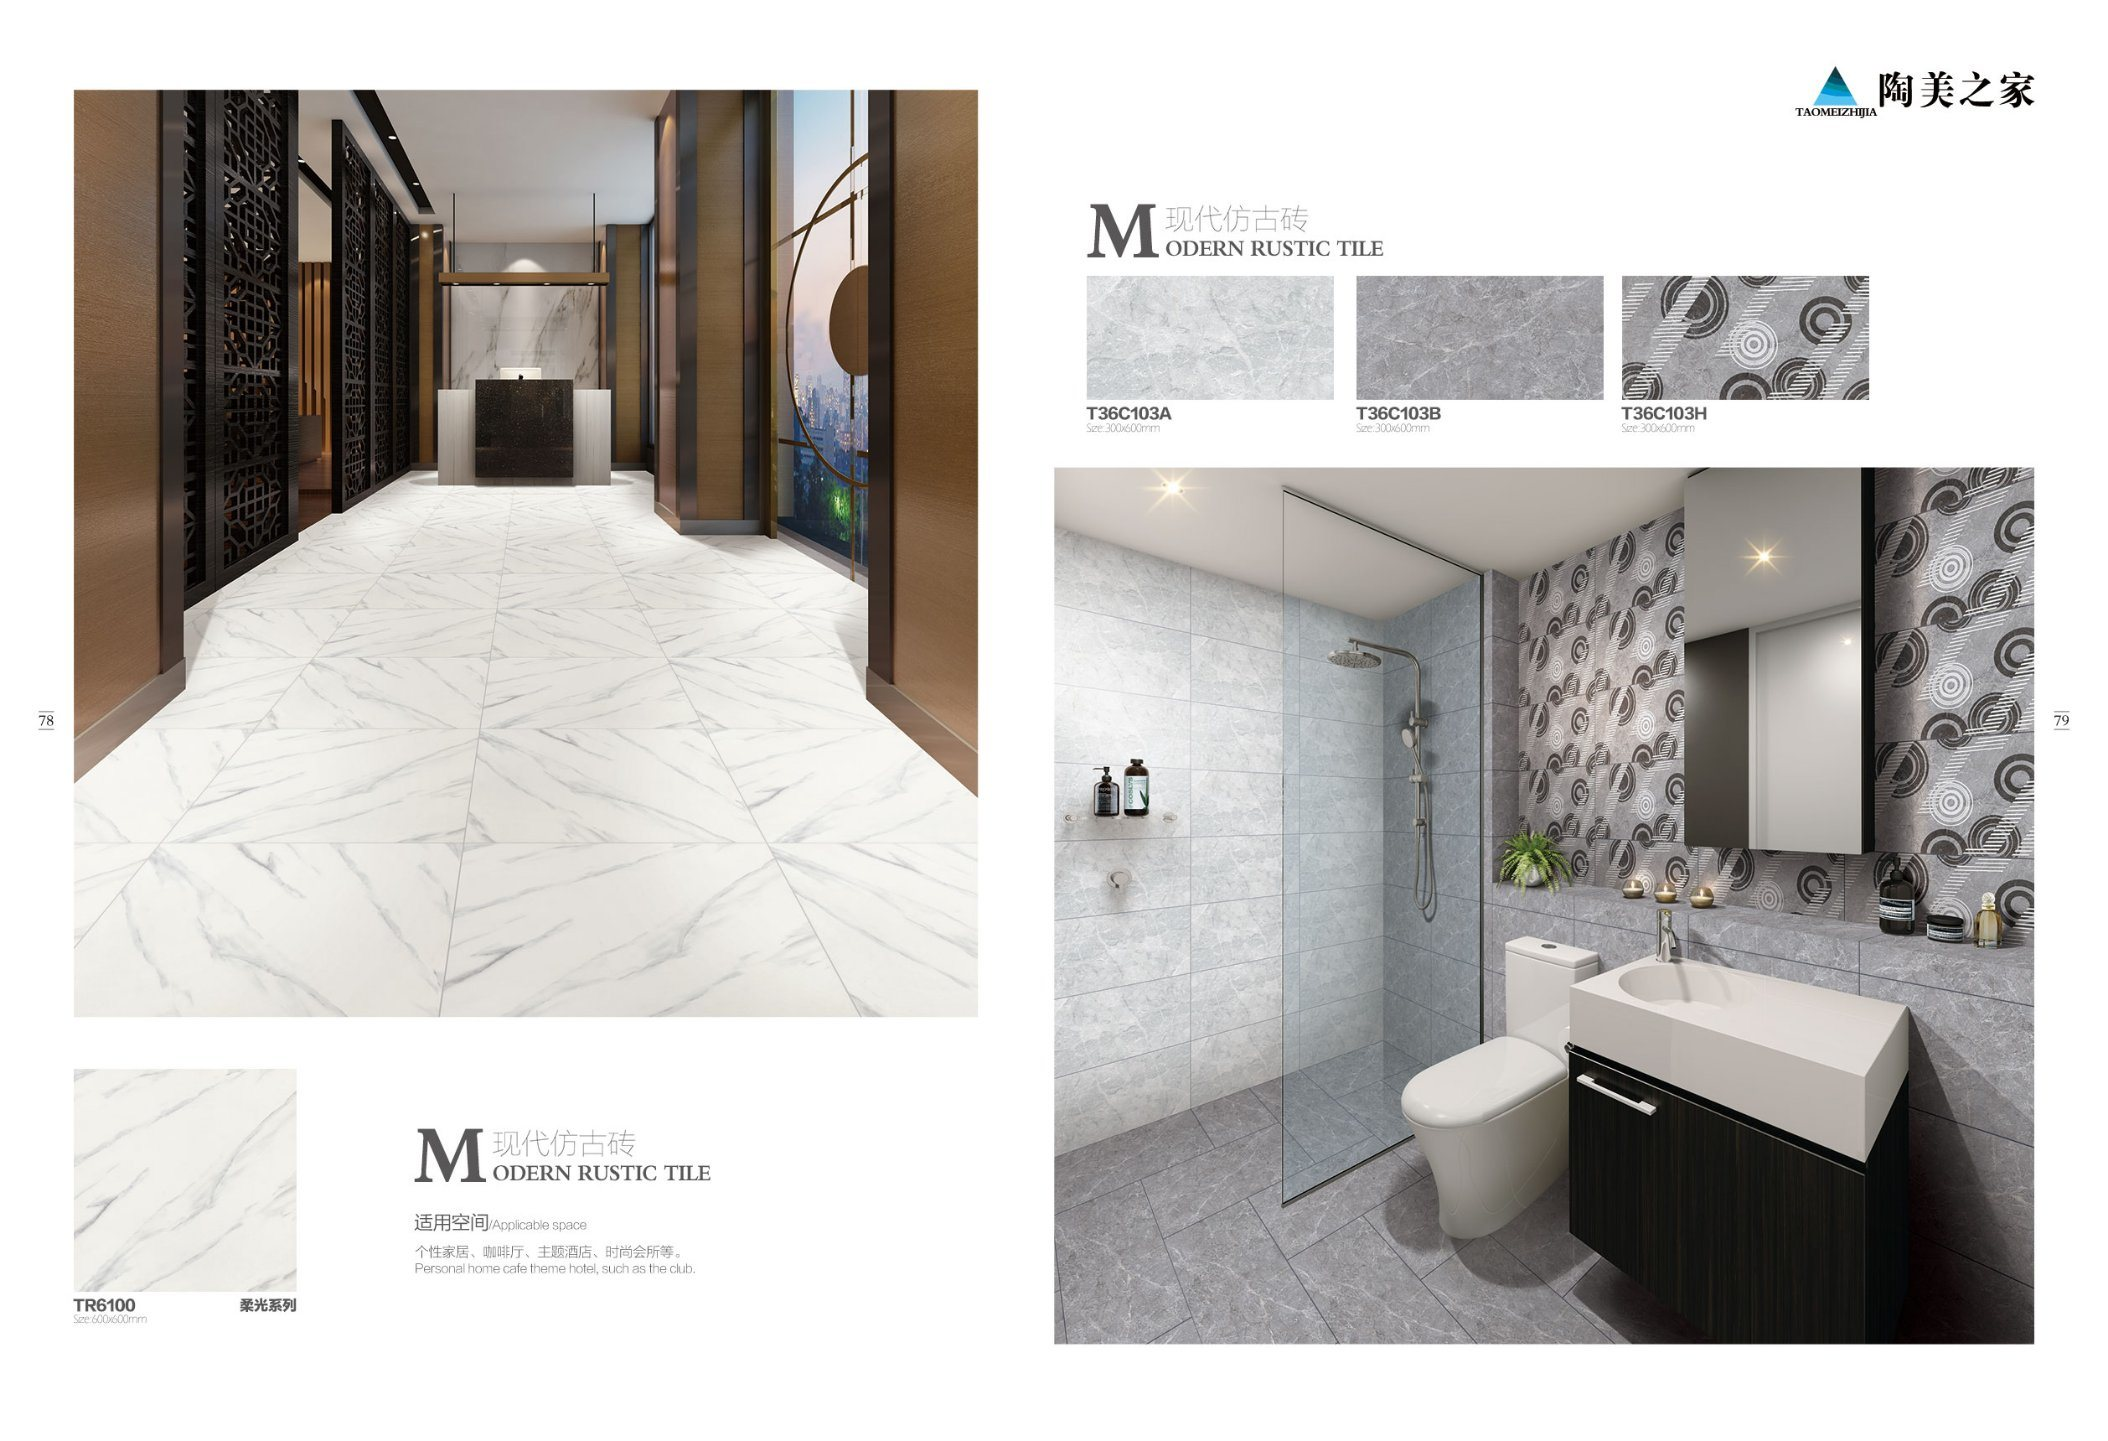 Soundproof Ceramic Wall Tile for Bathroom Wall Interior / External Tile